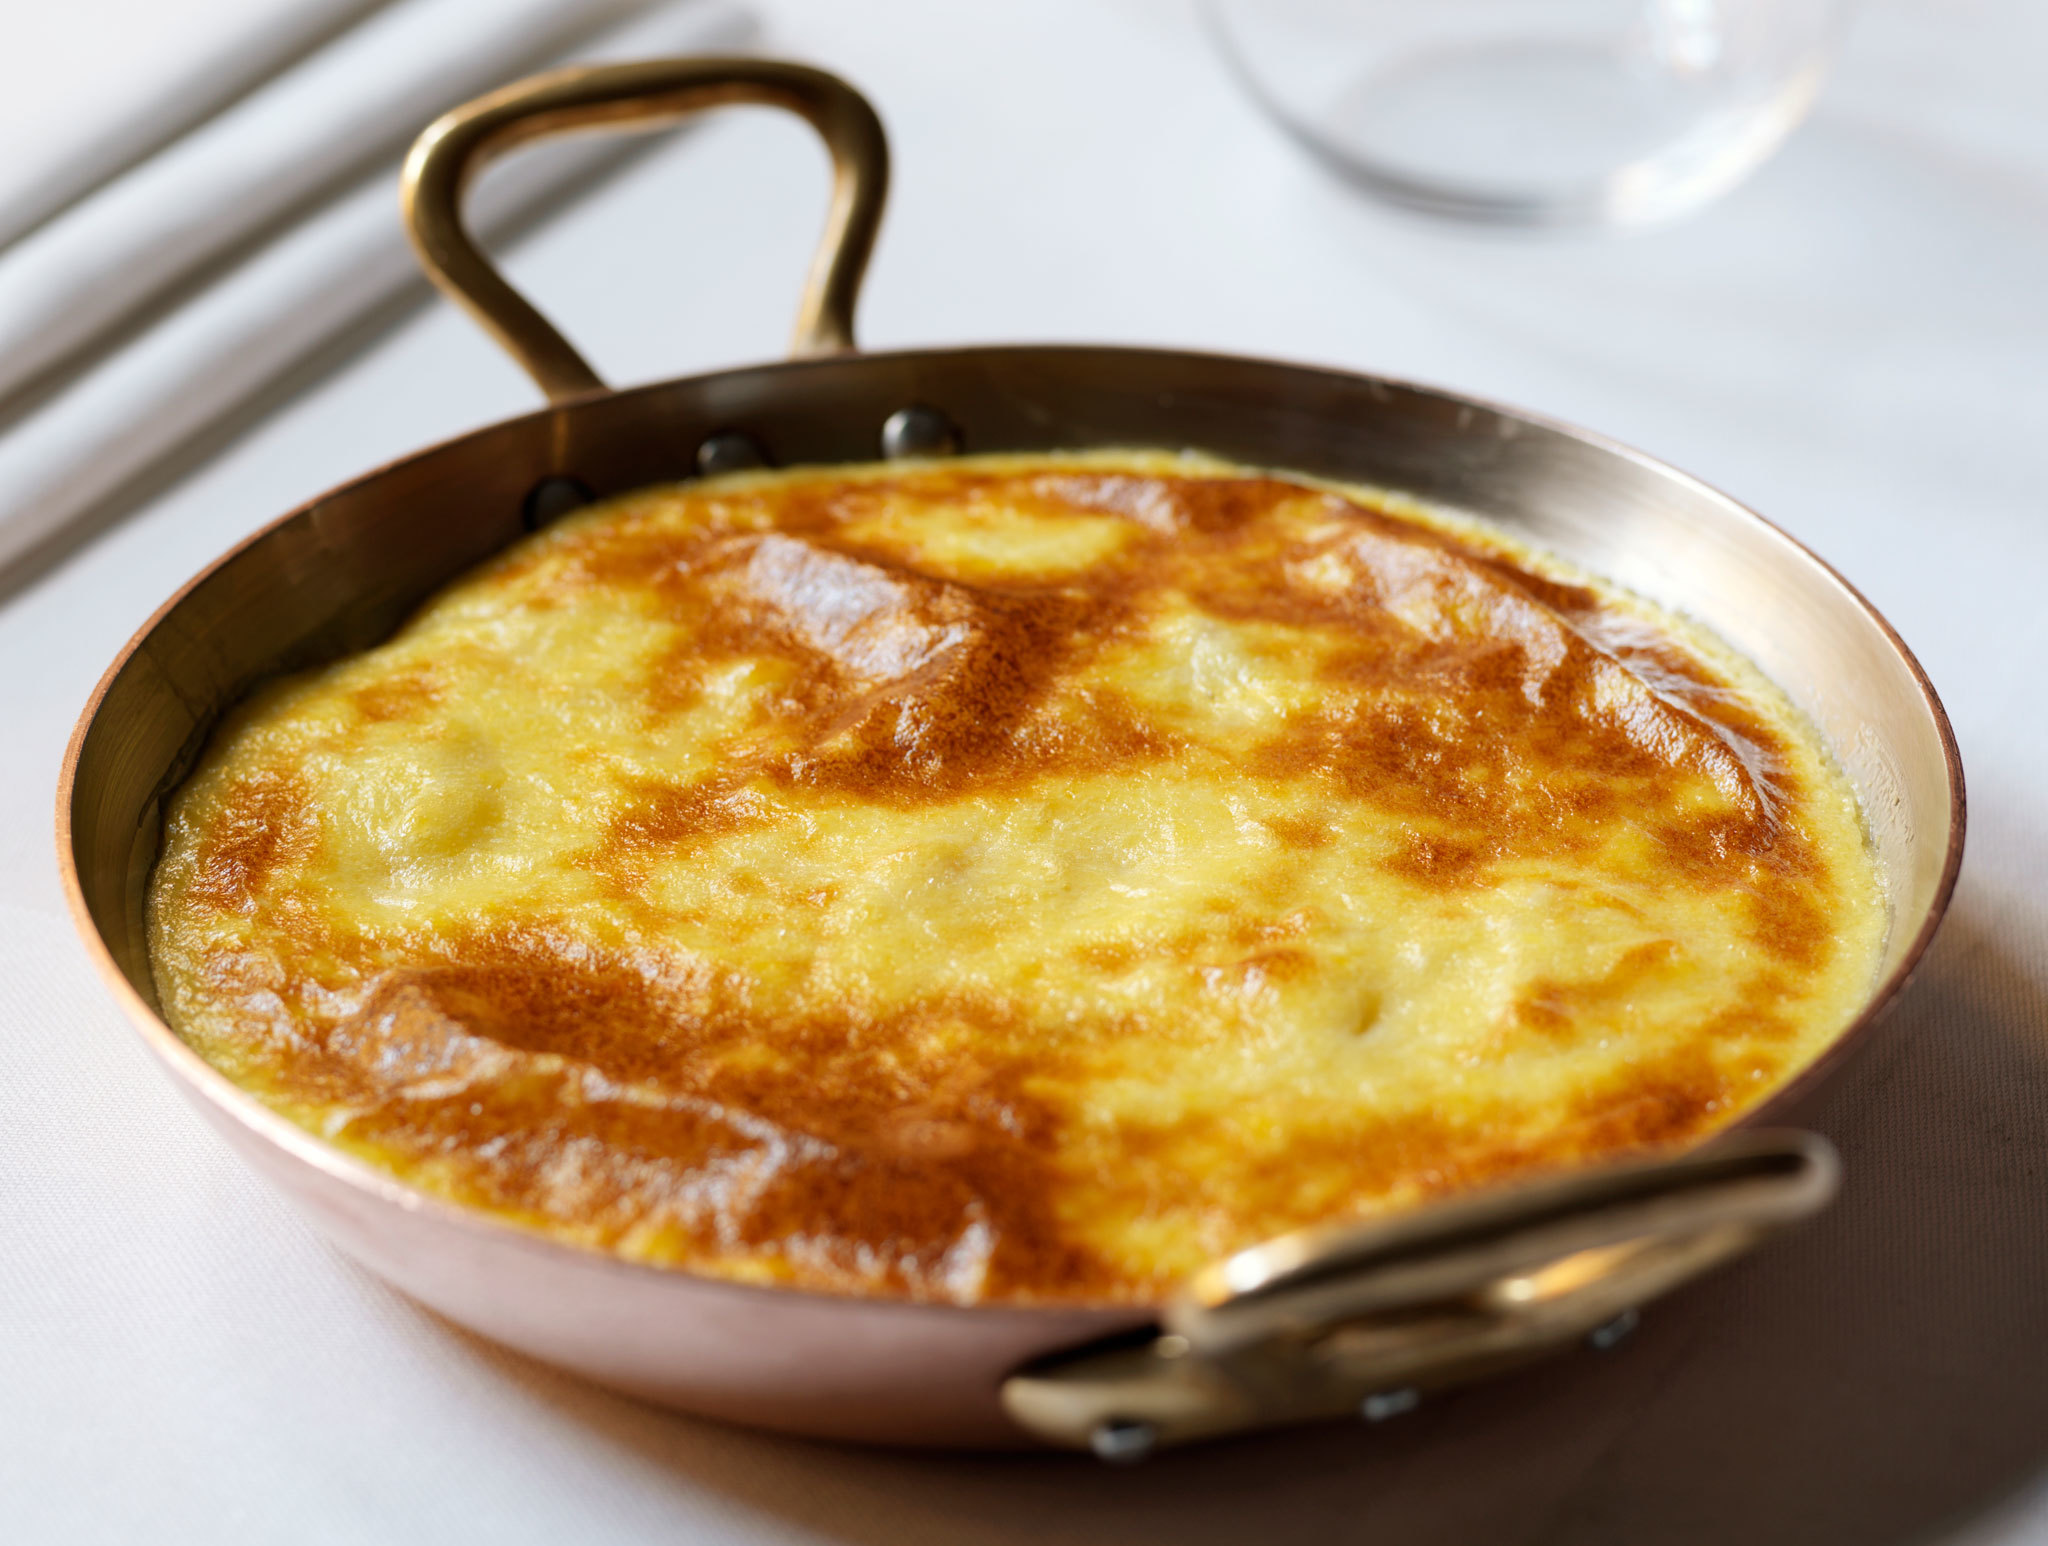 London's most historic dishes - Omelette Arnold Bennett, Savoy Grill